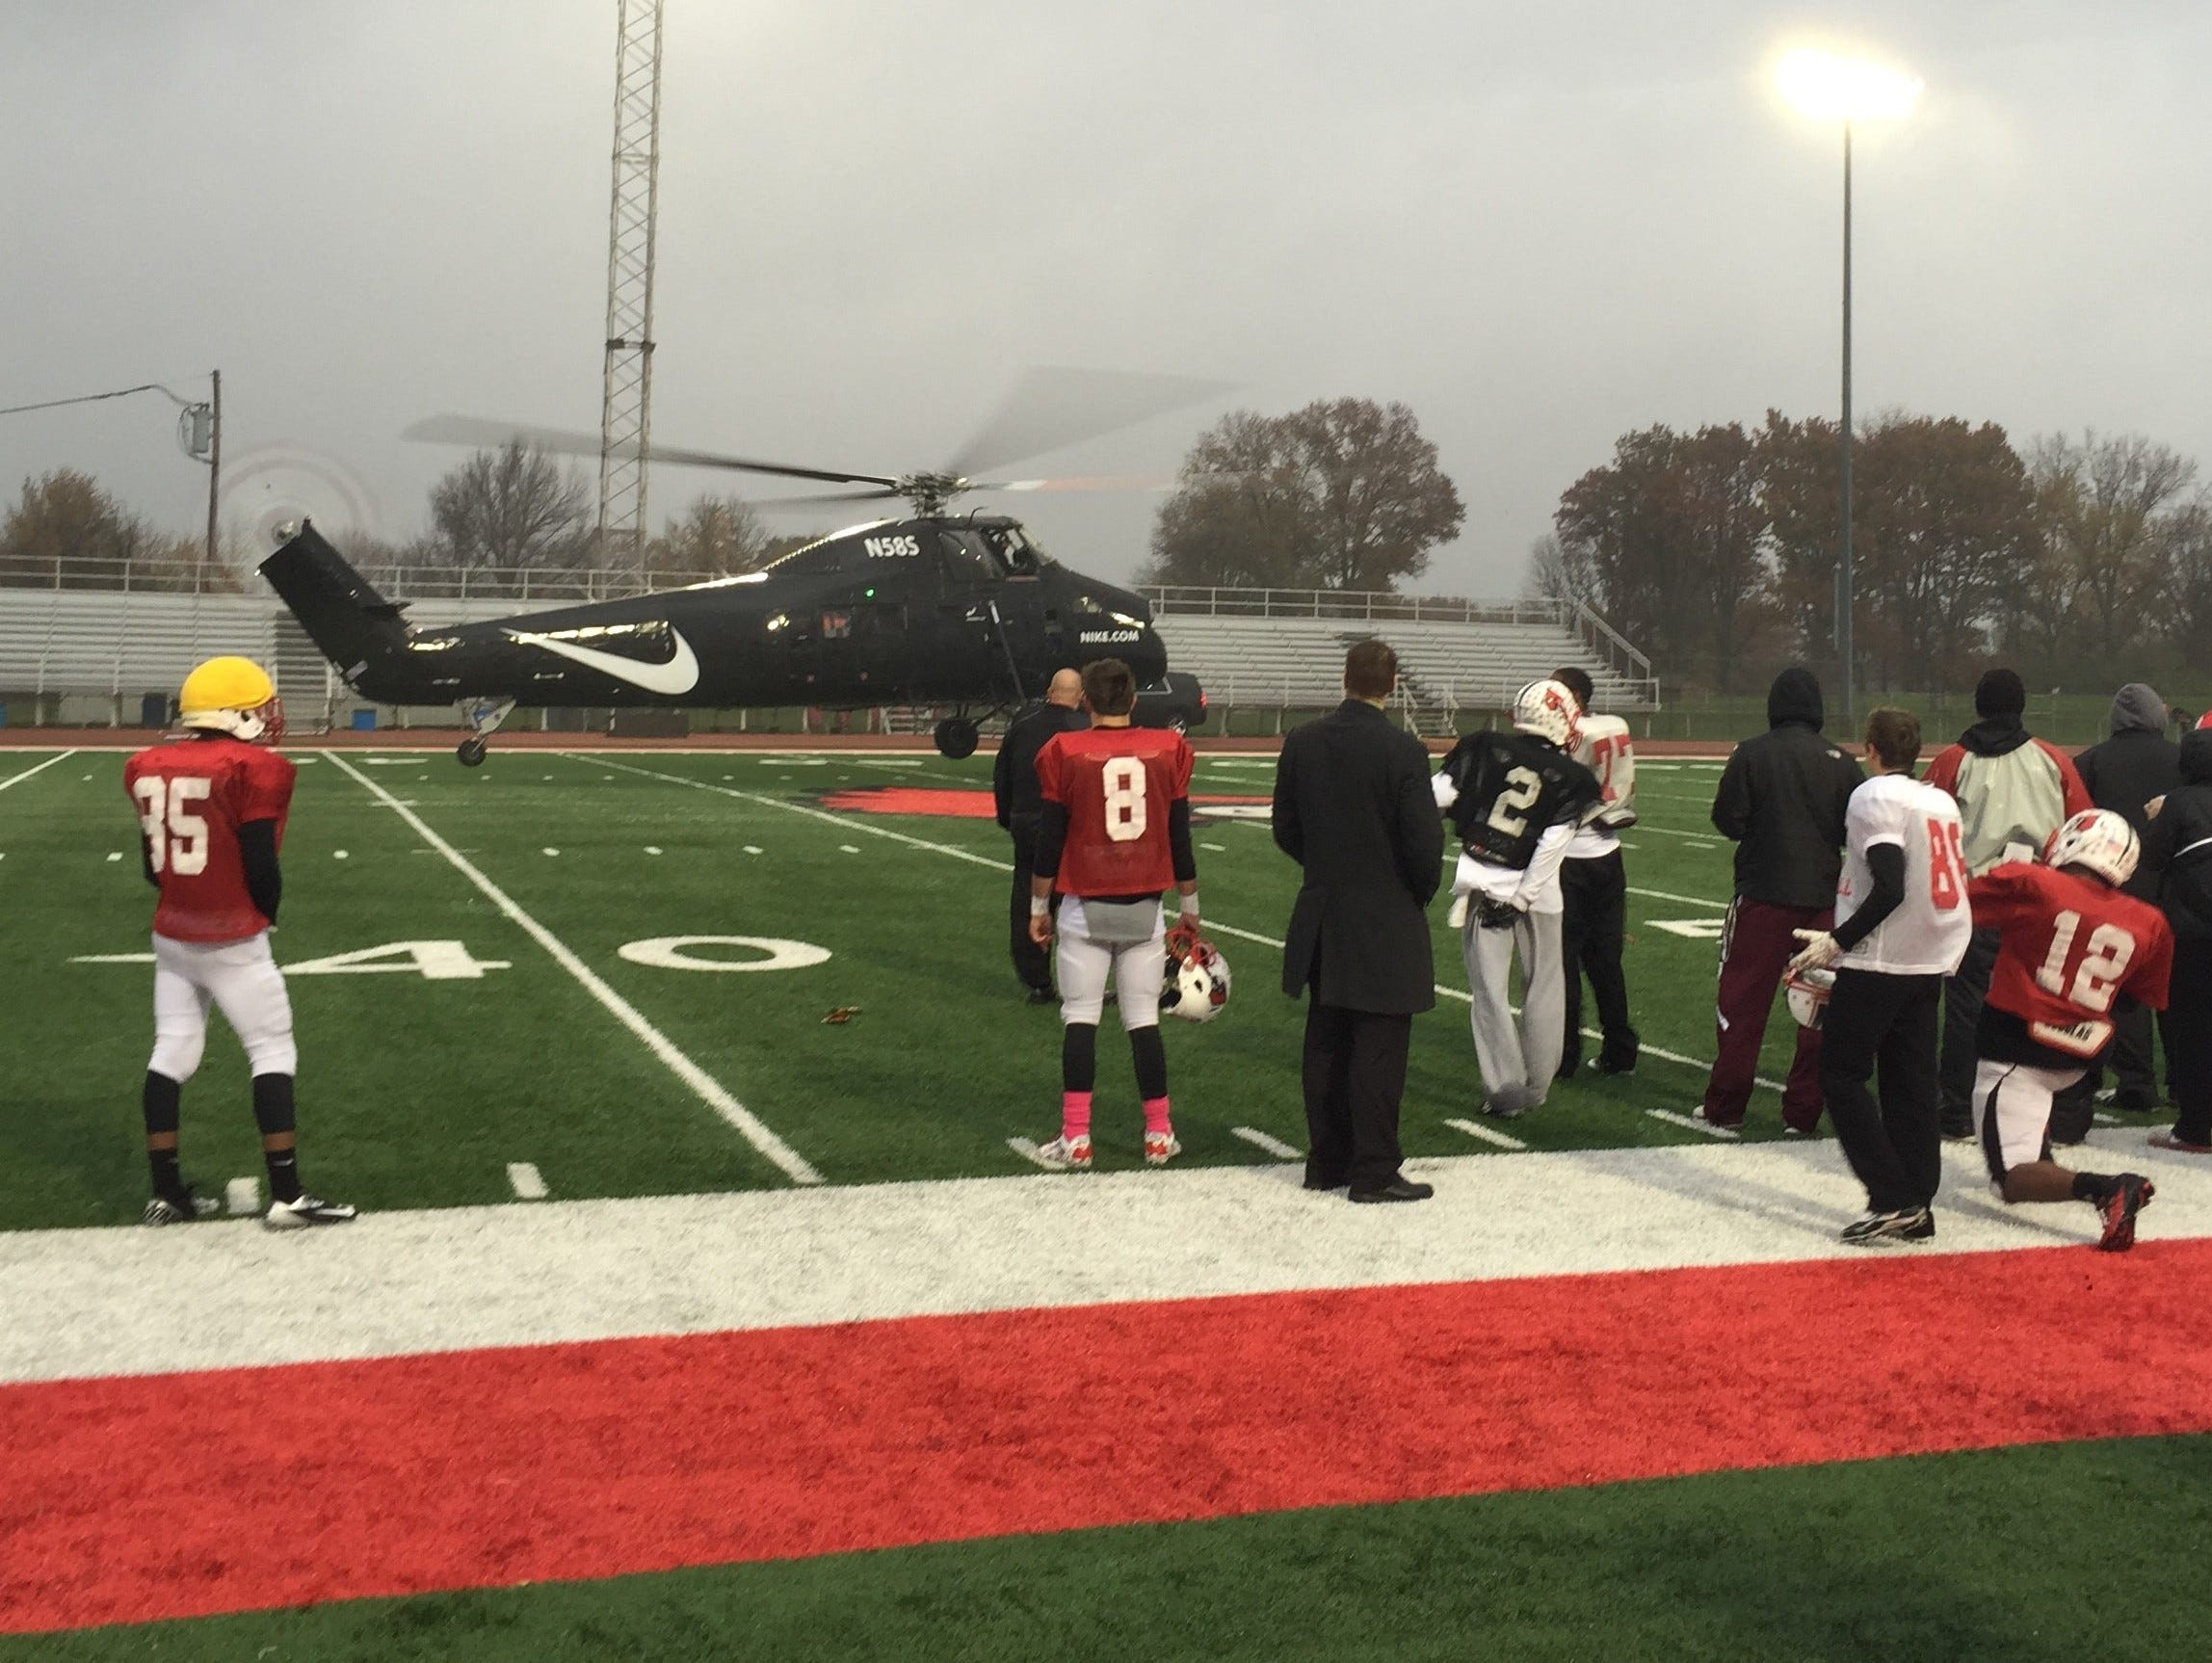 Nike, one of Colerain's corporate sponsors, delivered the Cardinals' cold weather gear by helicopter at practice Nov. 6, 2014.